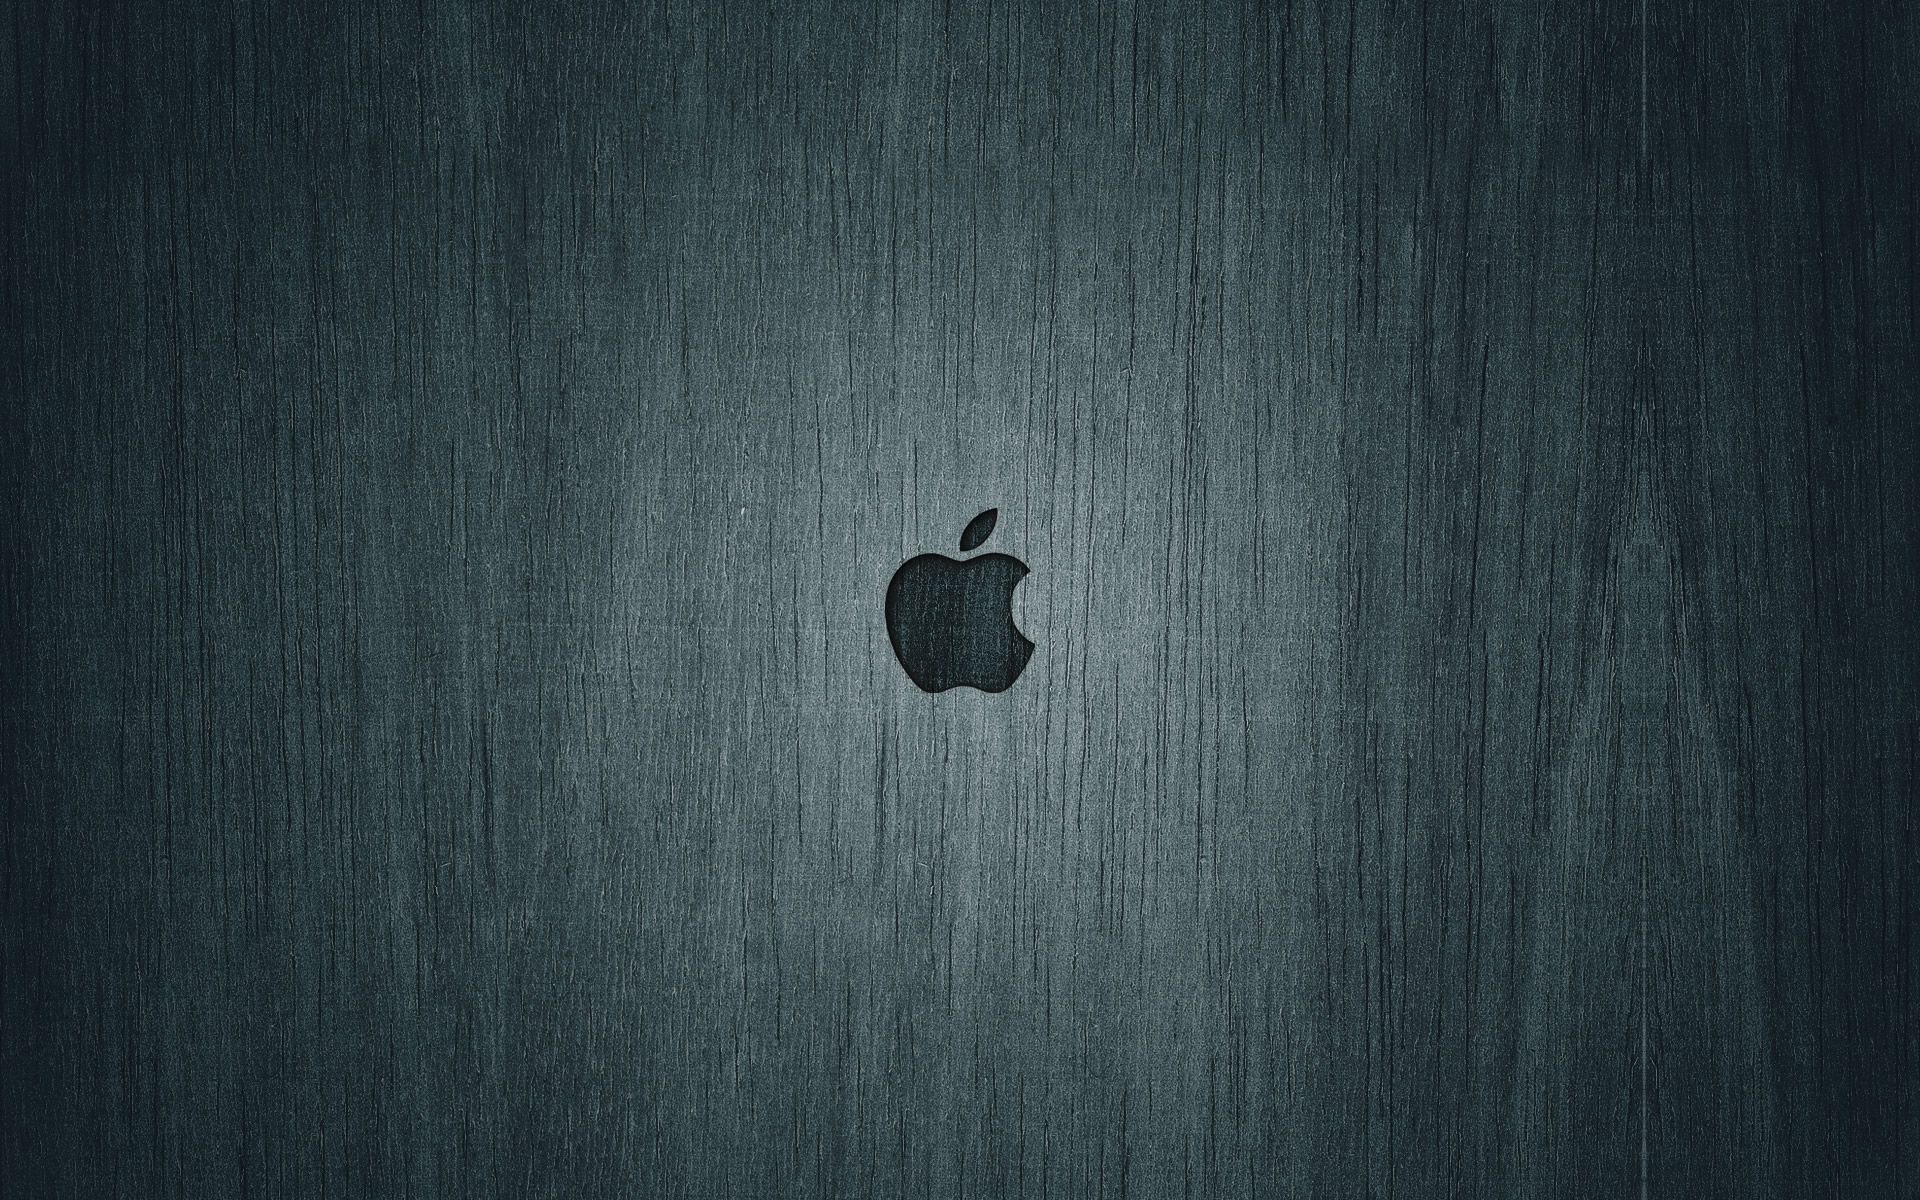 Hd Creative Apple Pictures